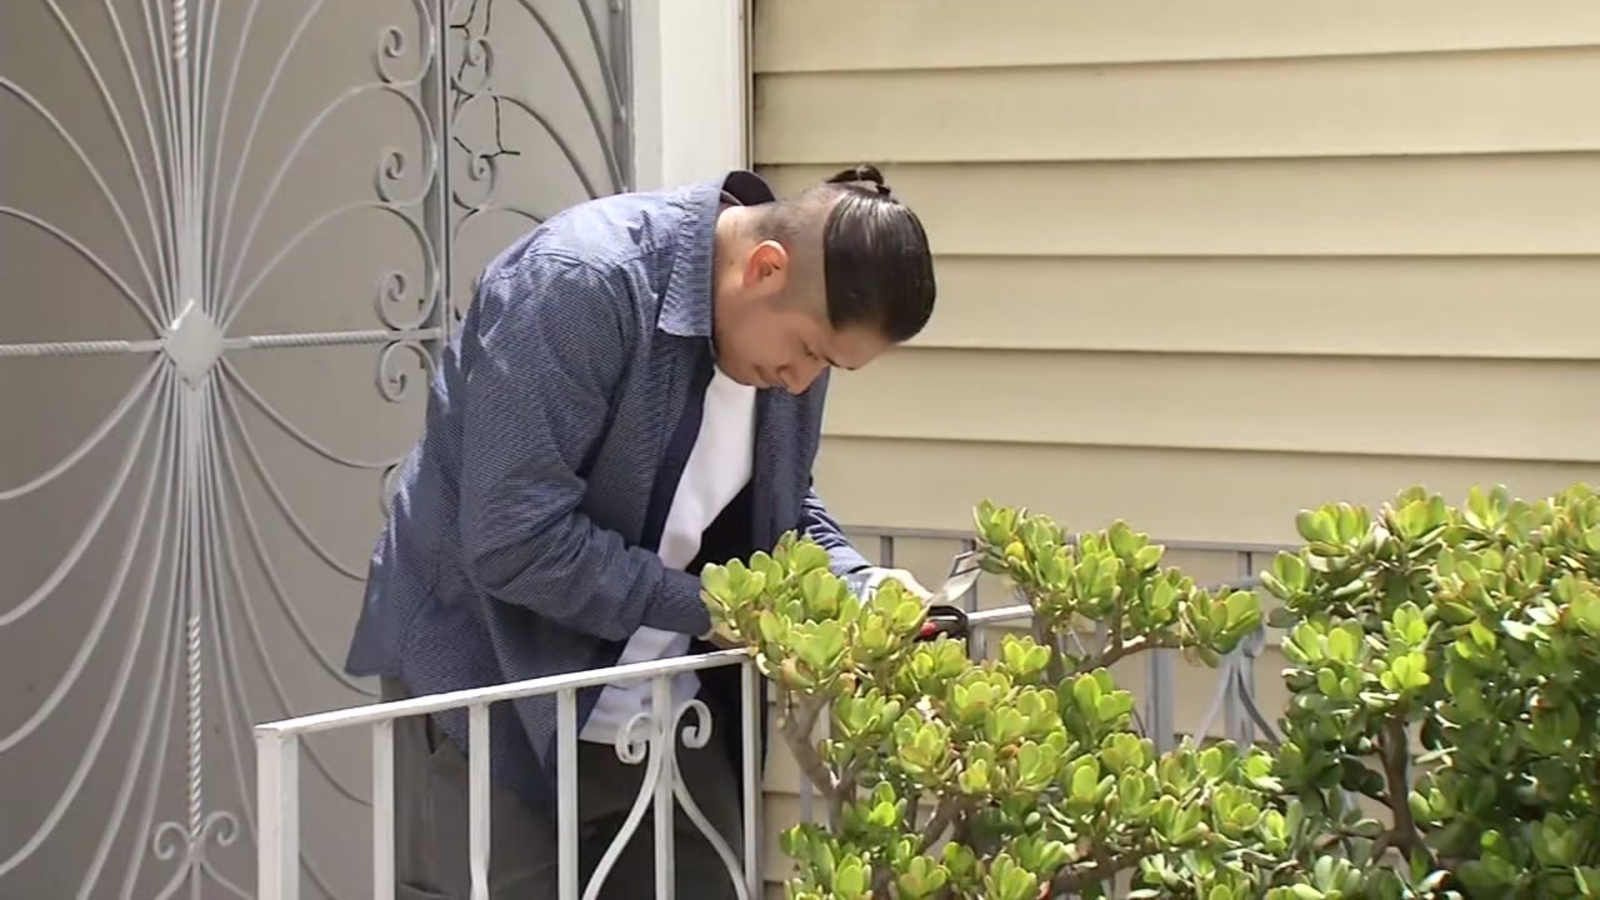 Only On Abc7news Com Tracking Down Fake Landlord Who Duped South San Francisco Family Out Of 10 000 Abc7 San Francisco